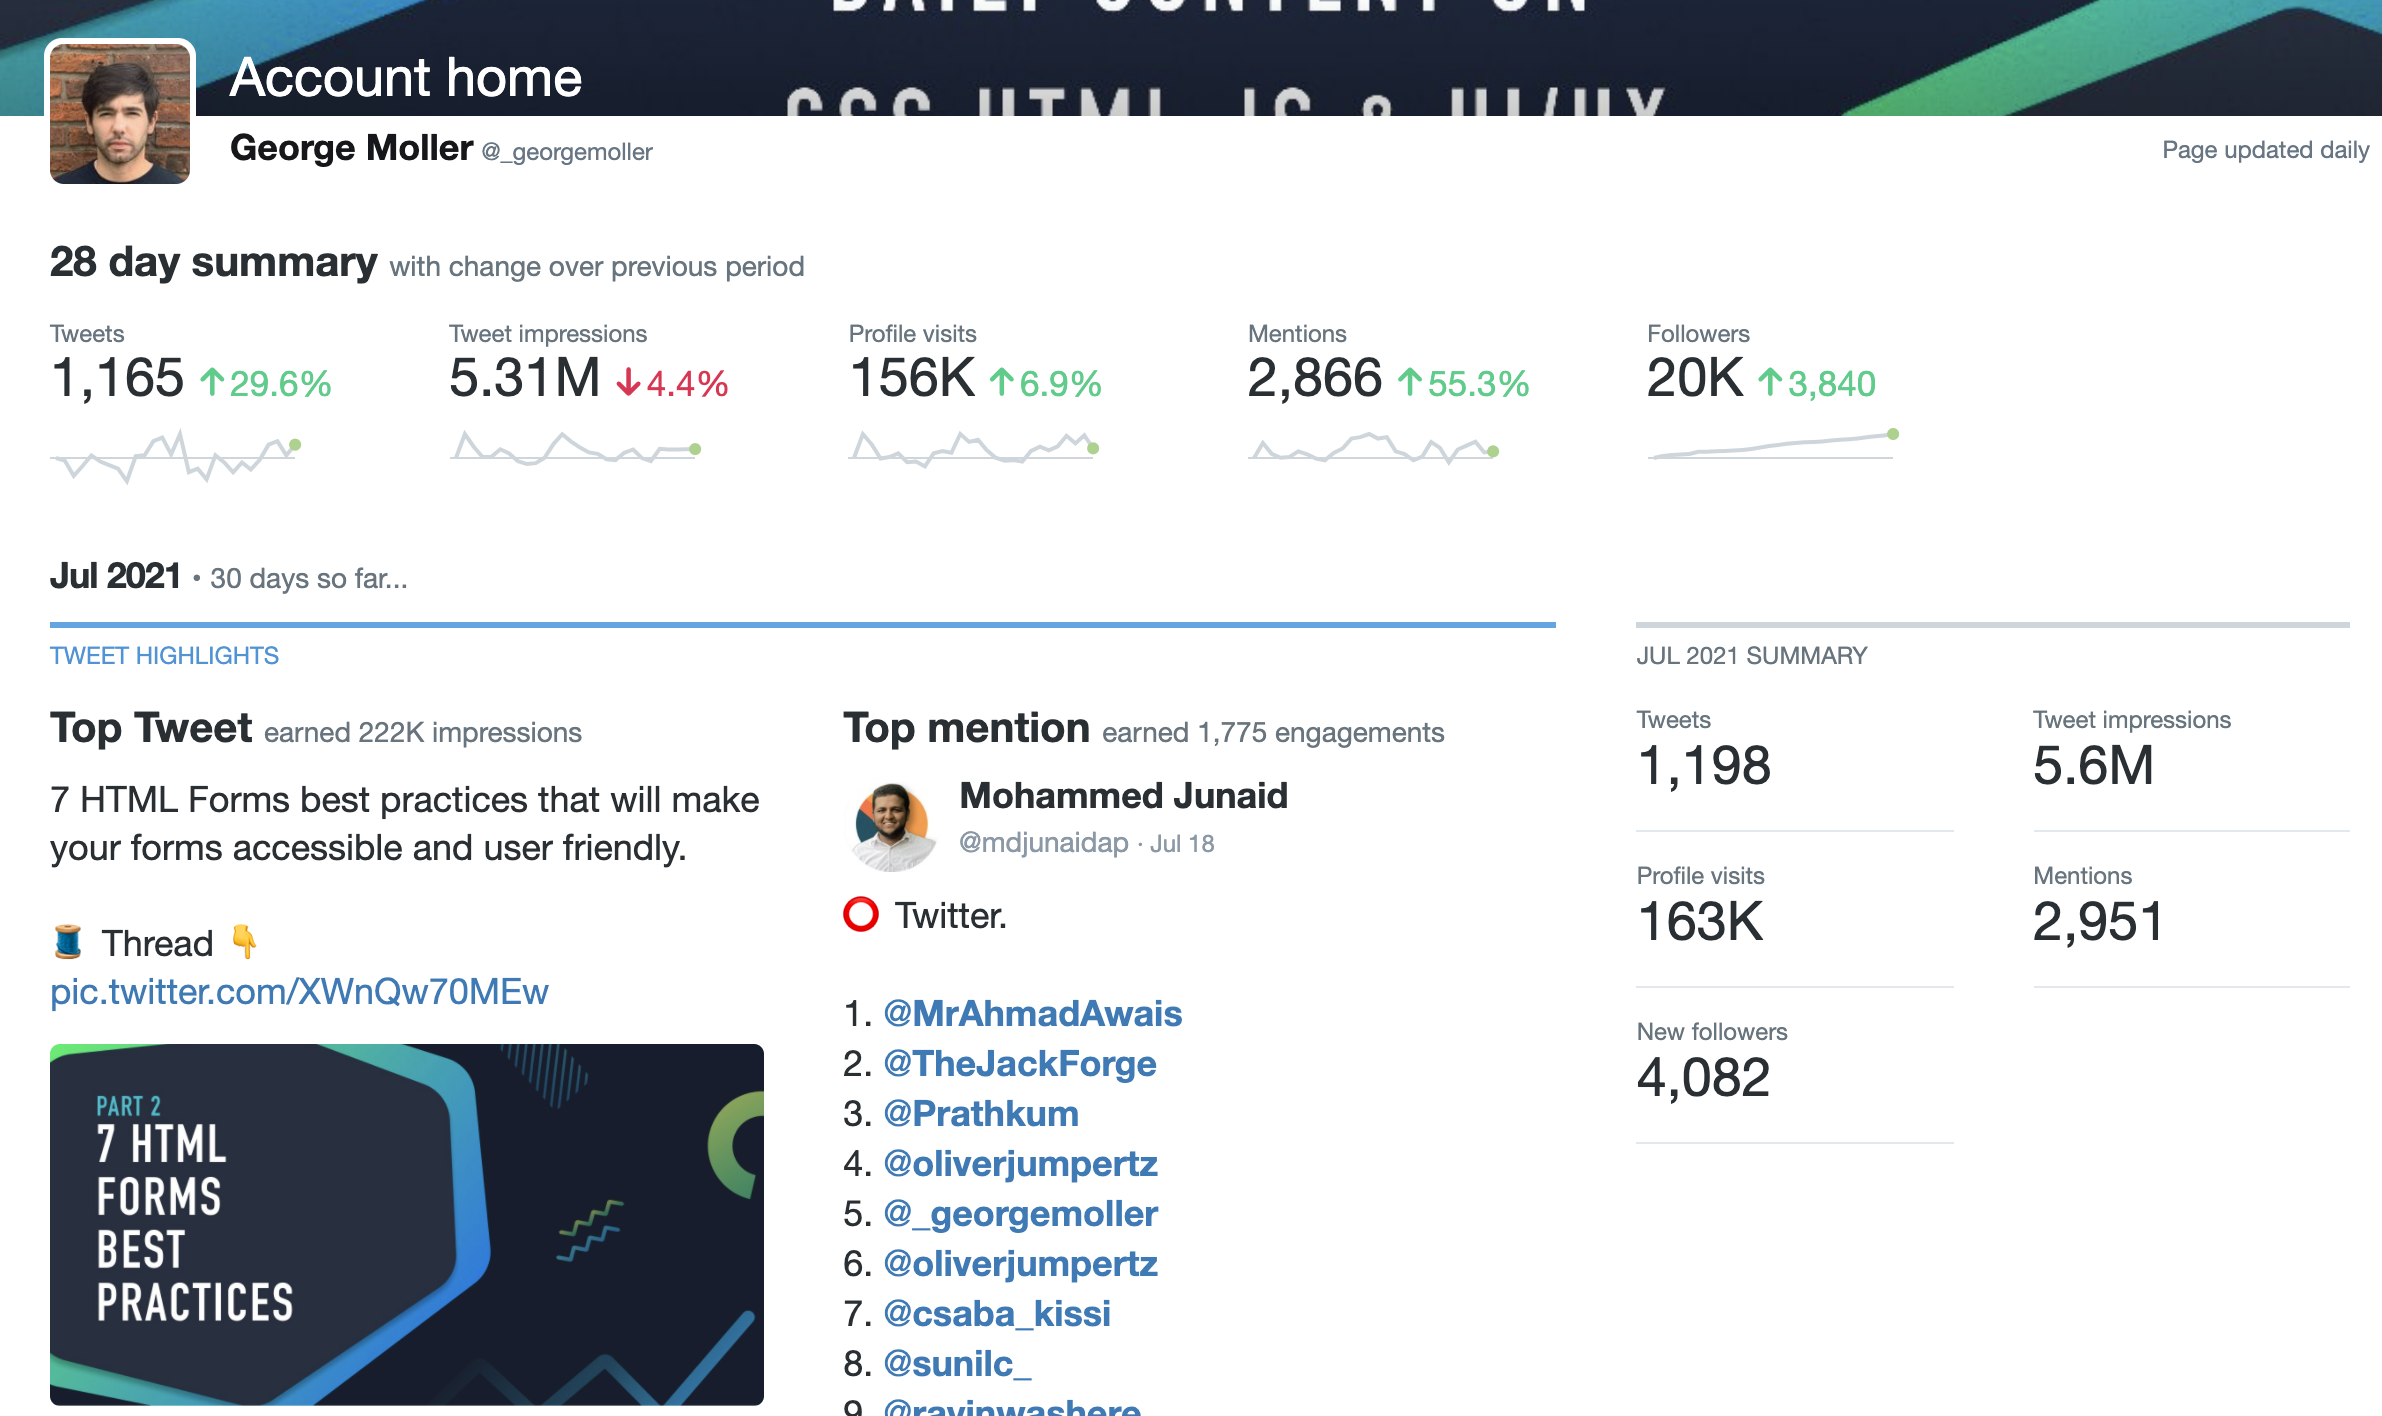 twitter analytics from july 2021